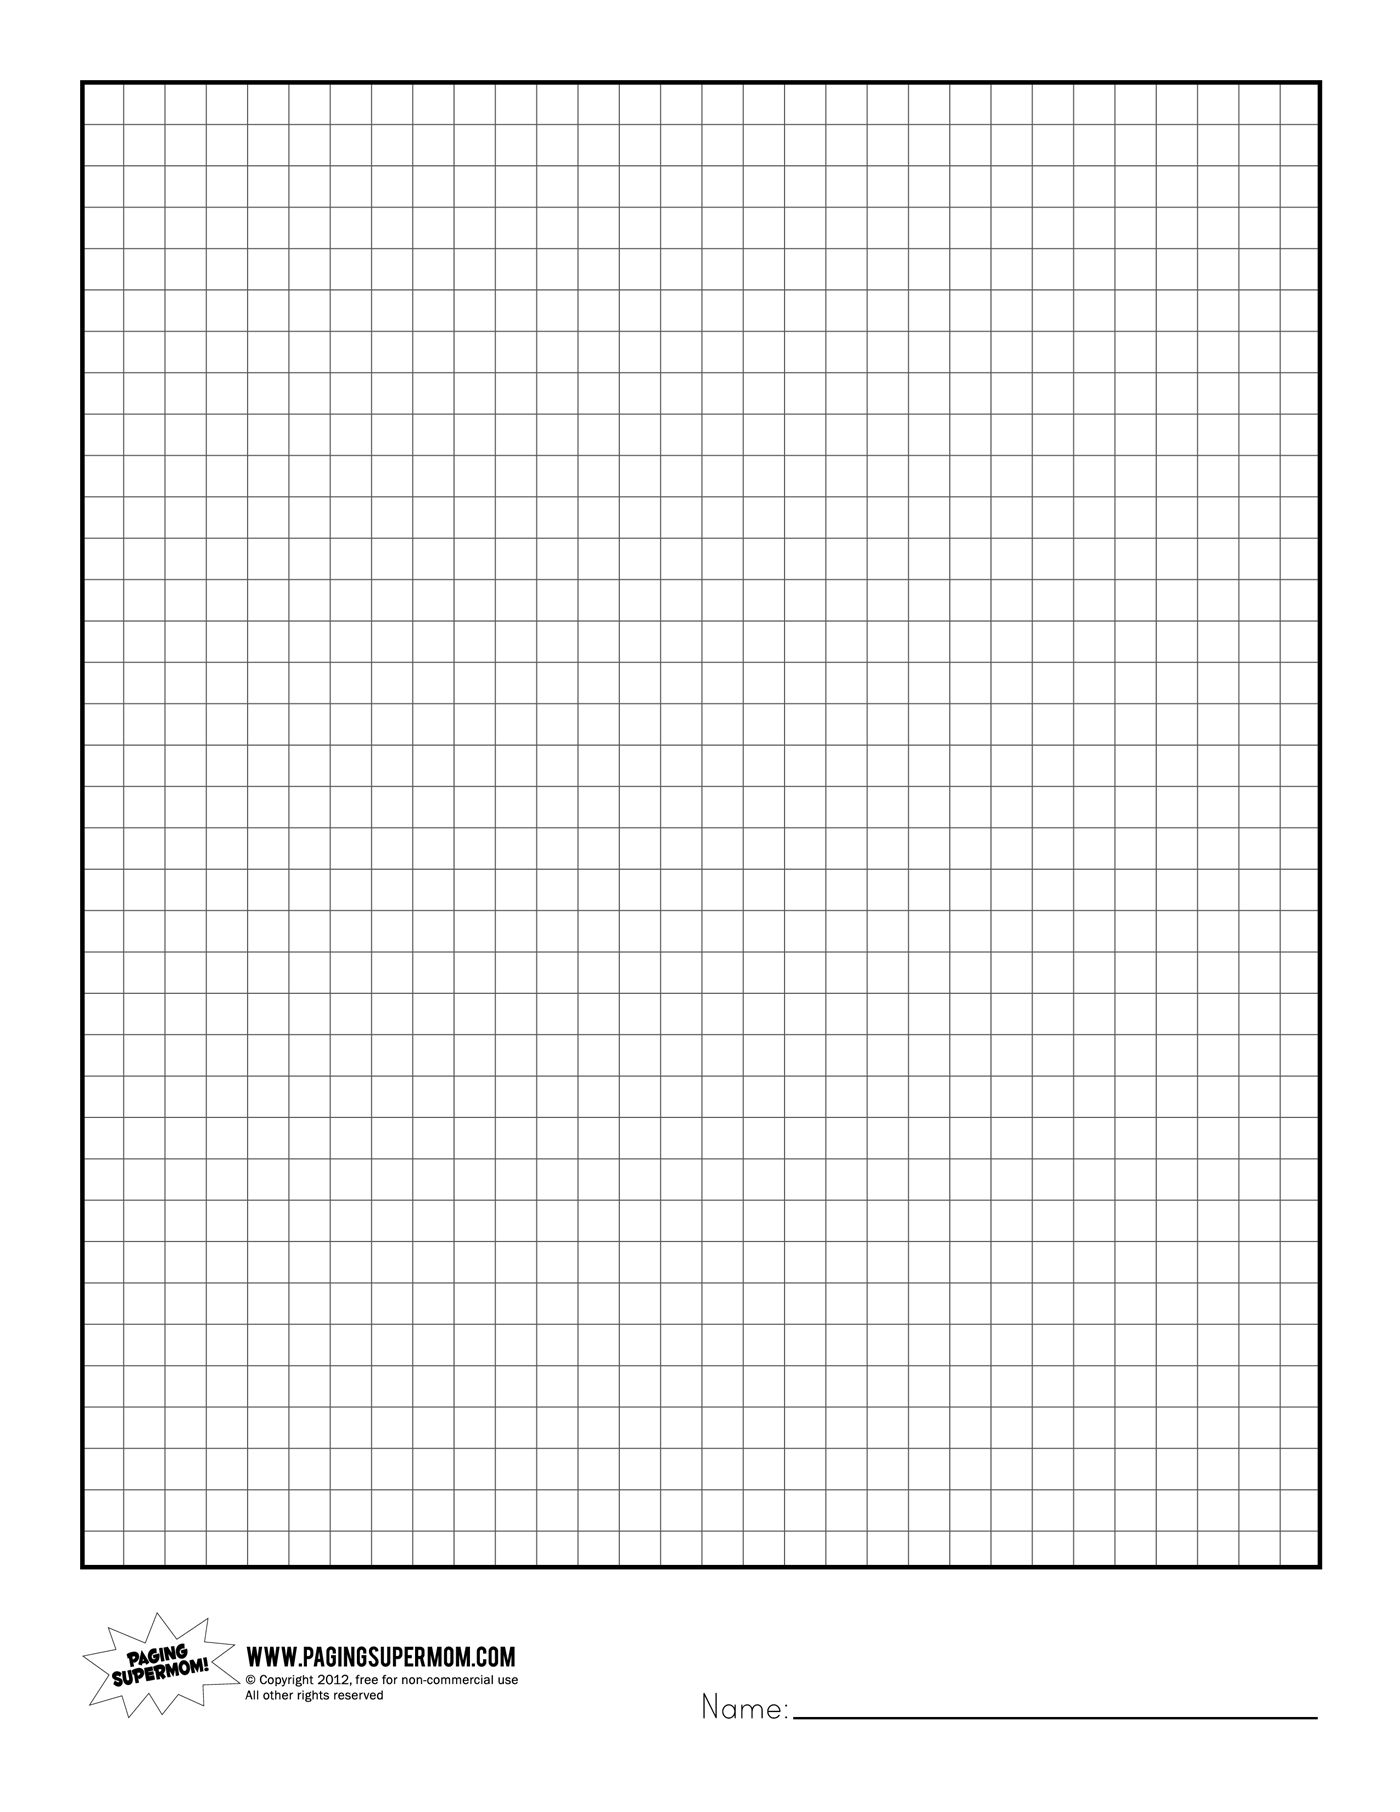 Printable Graph Paper | Pinterest | Graph paper, Supermom and Free ...